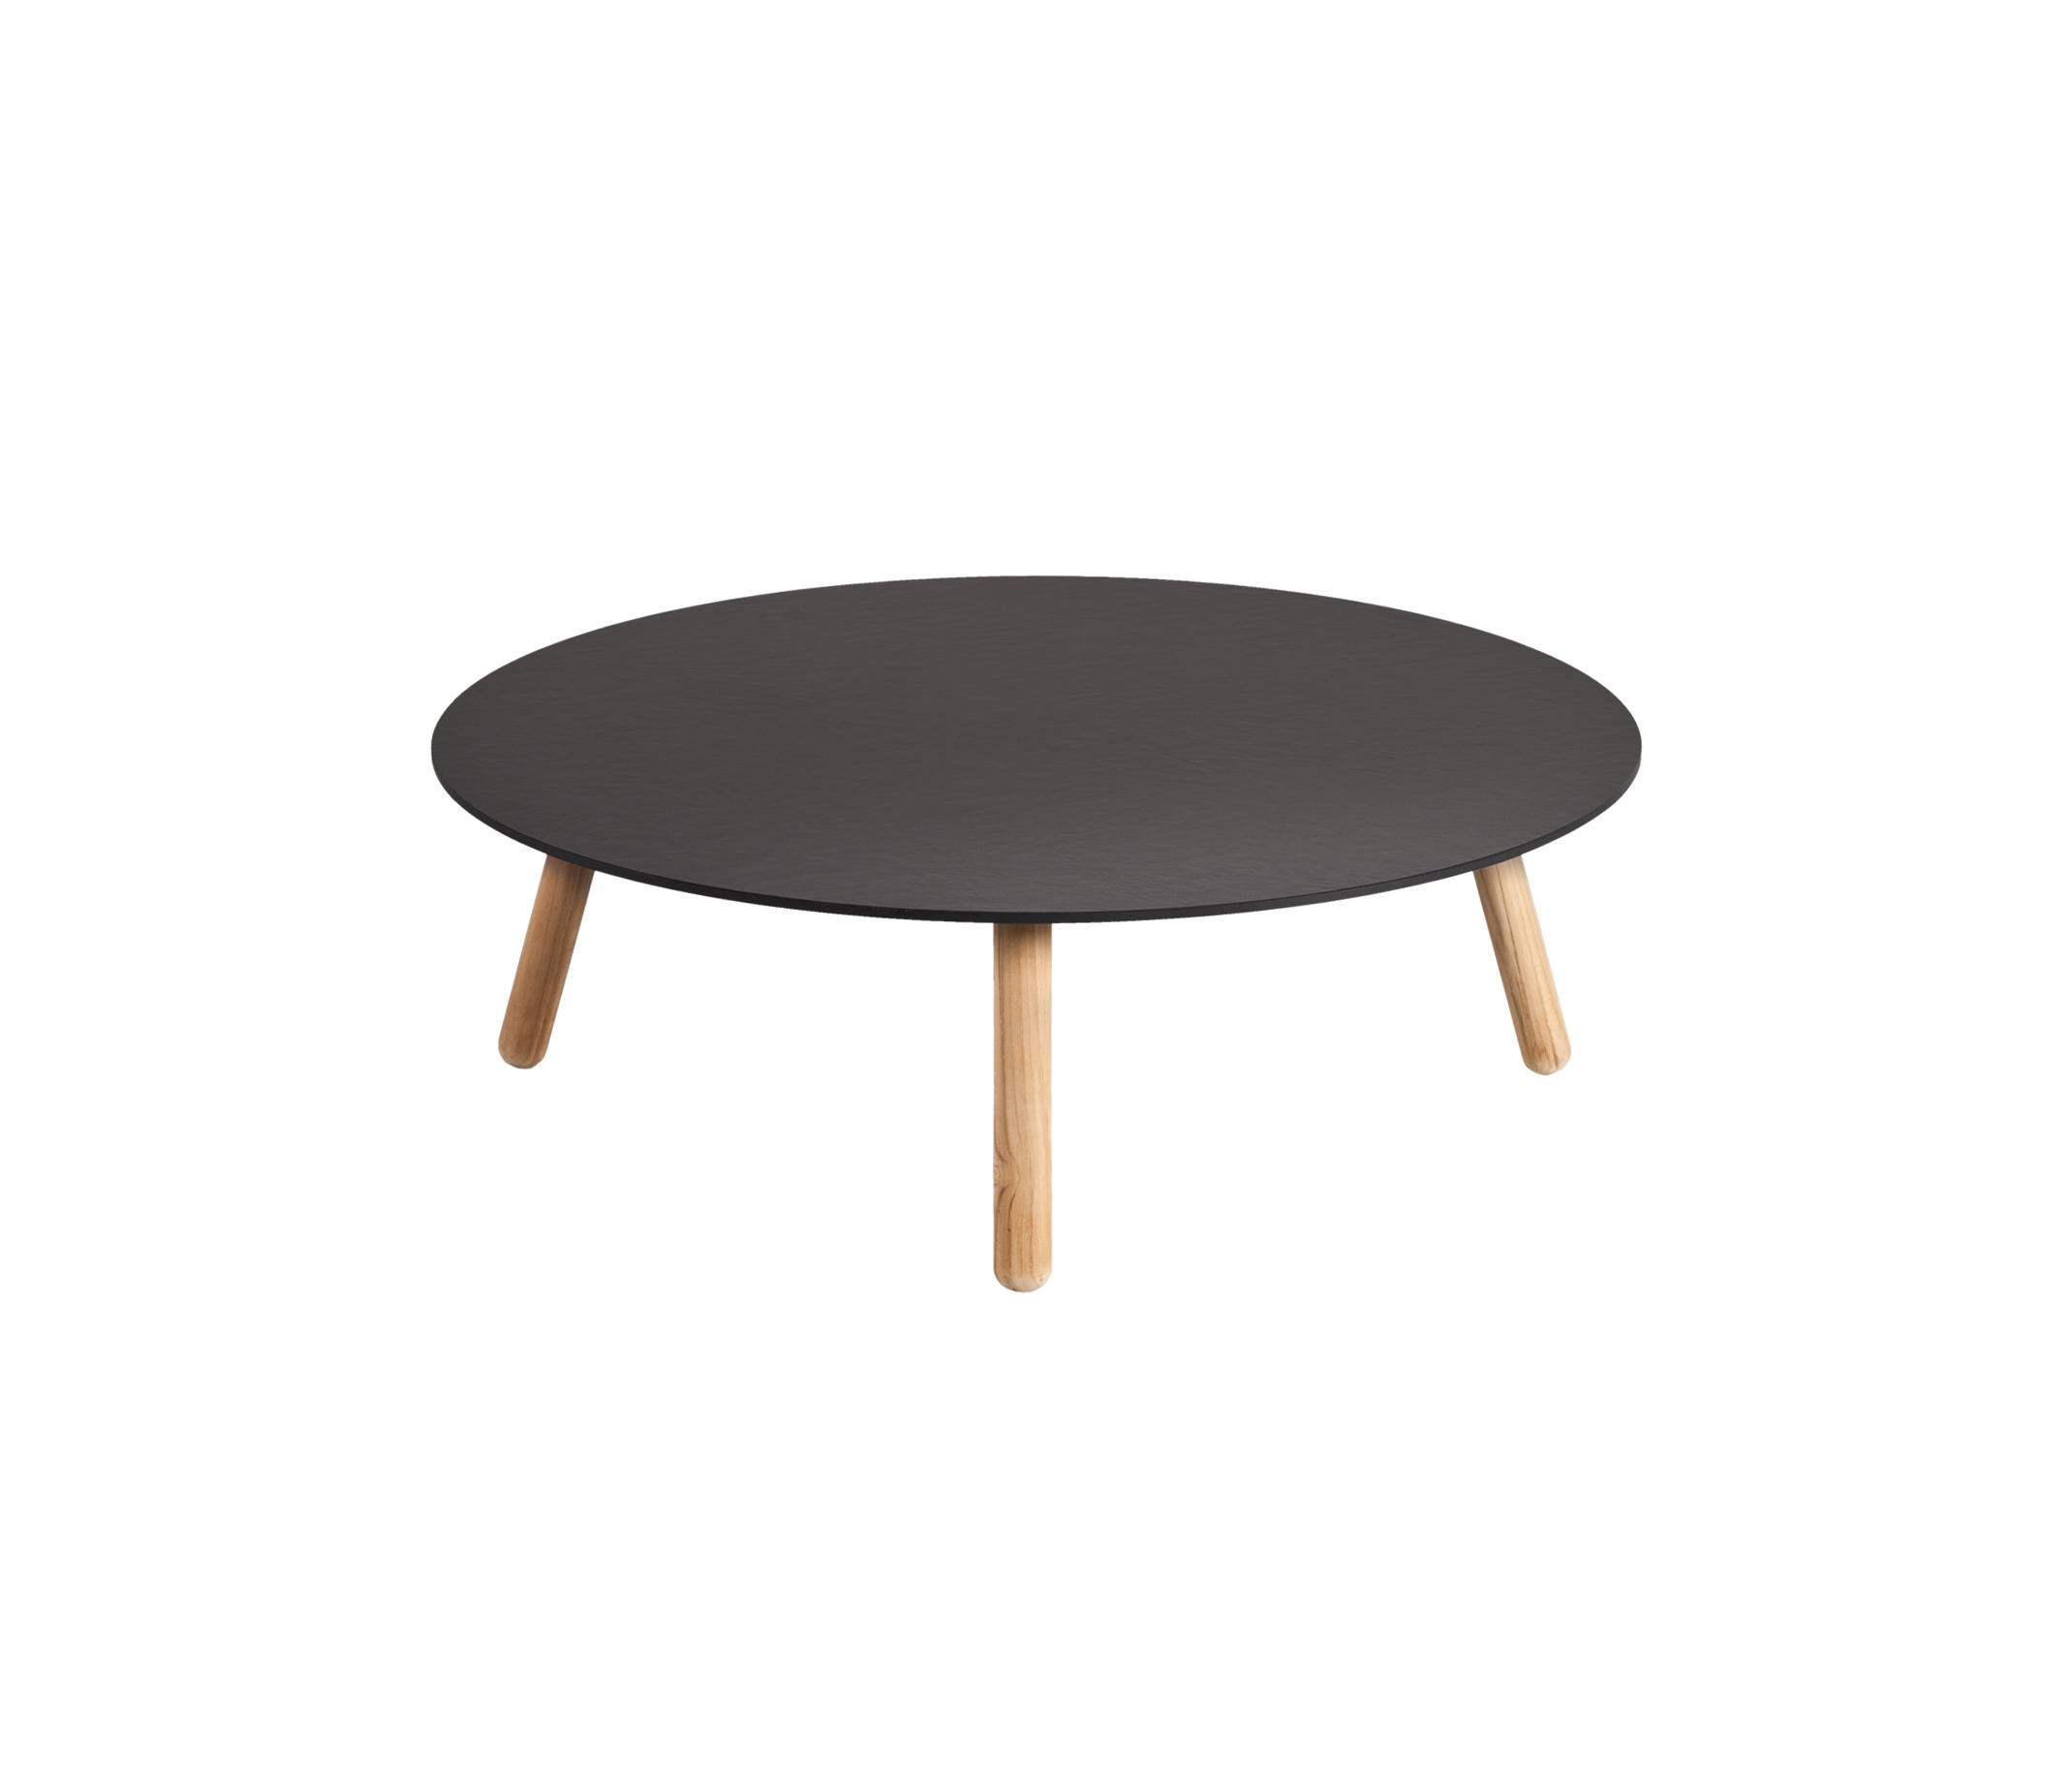 round coffee table dekton top coffee tables from point architonic. Black Bedroom Furniture Sets. Home Design Ideas